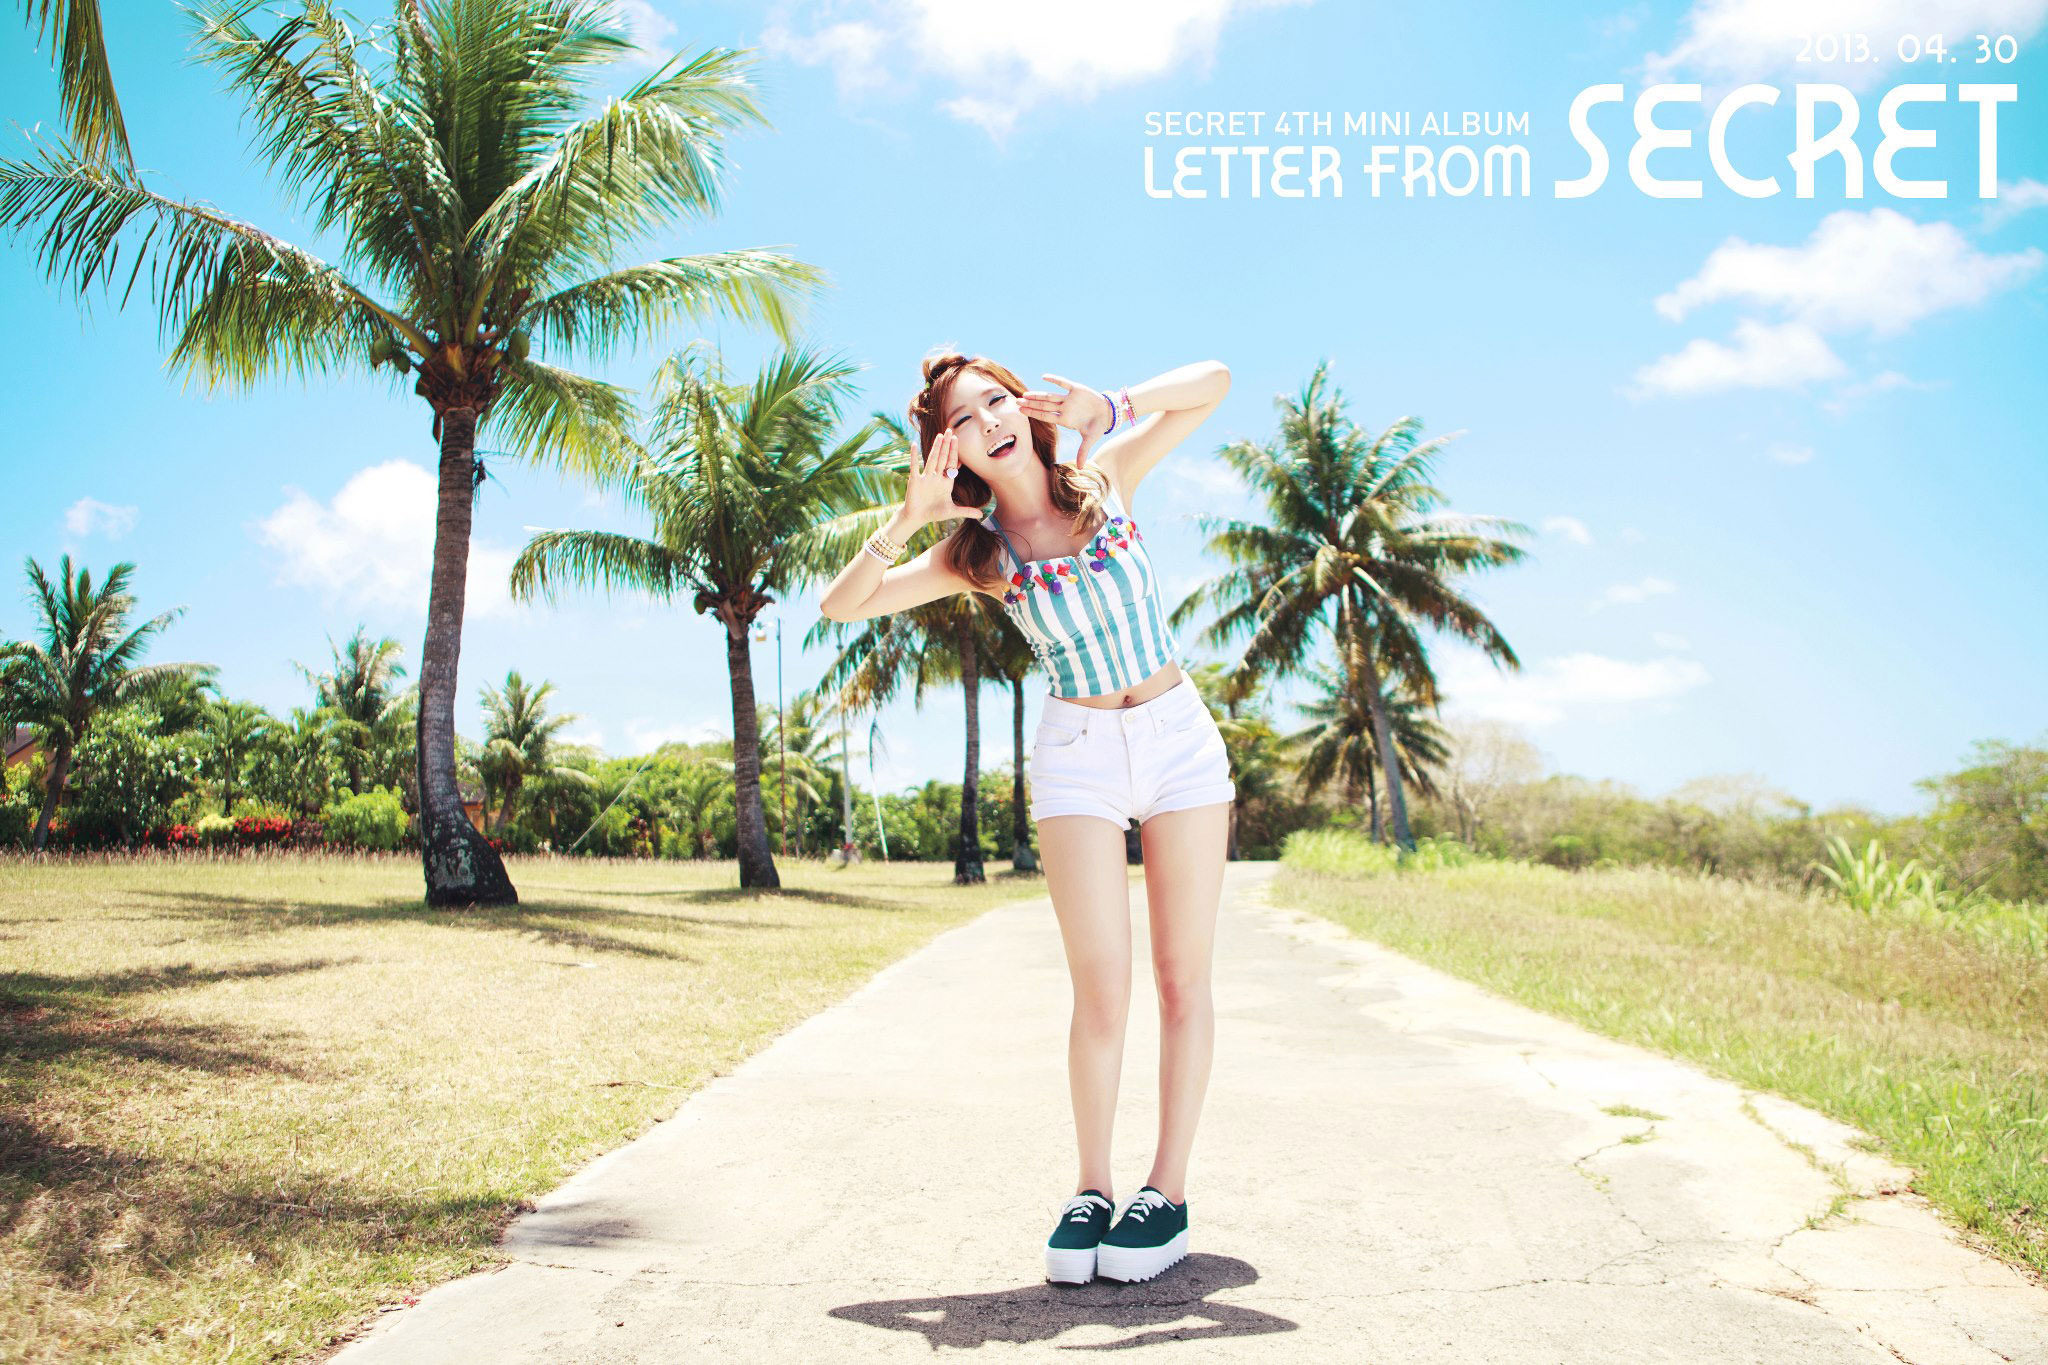 Secret Hana Letter album